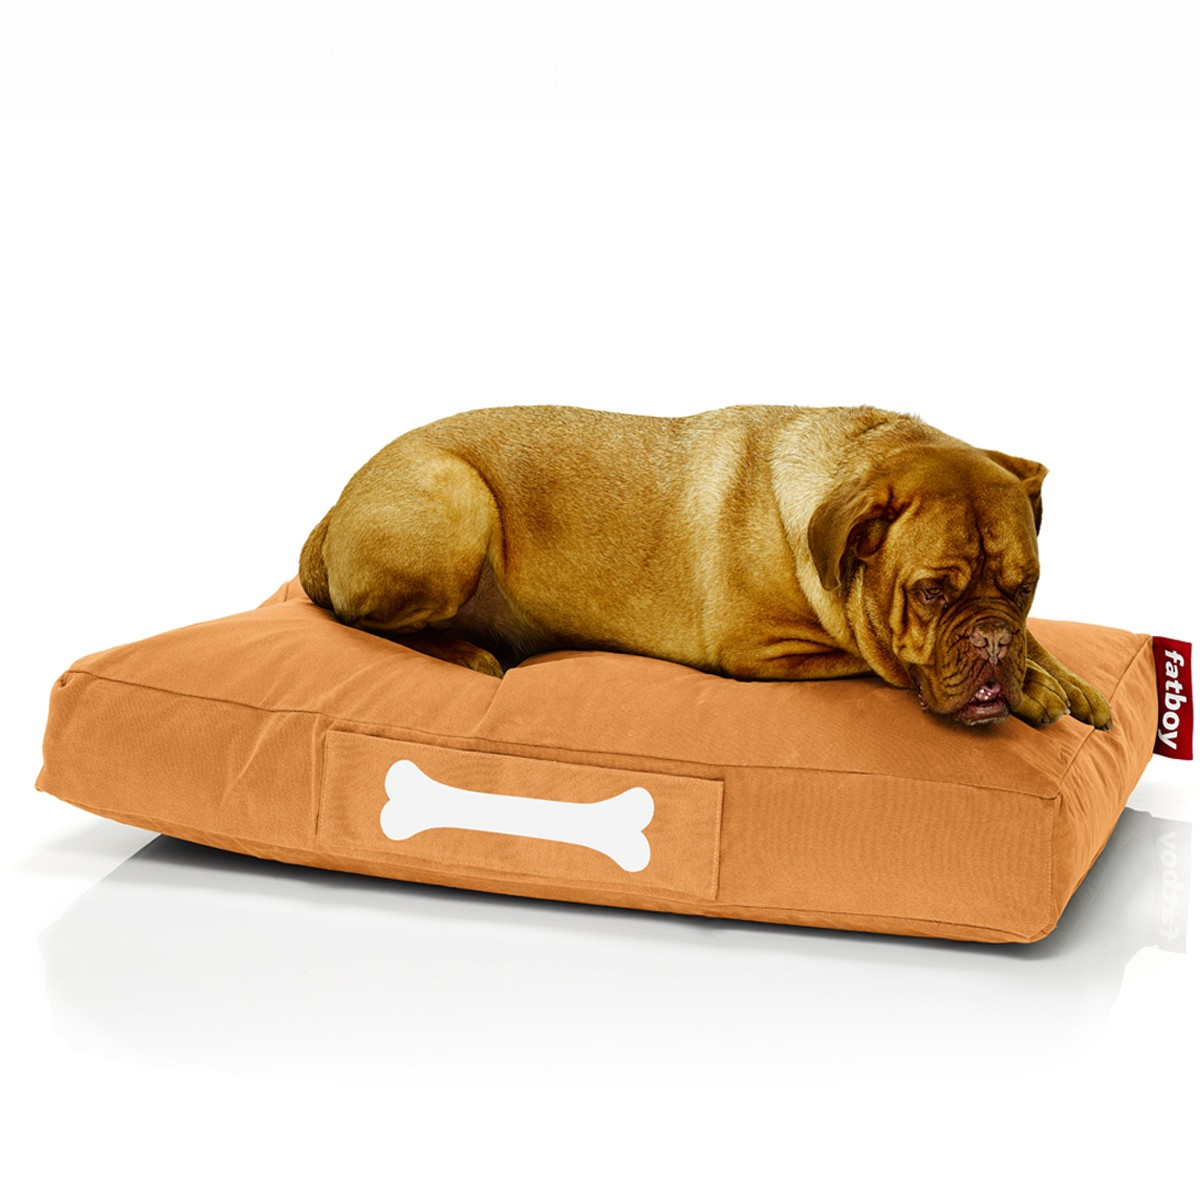 bed jumbo resist luxury for dog water suede orthopedic dogs xxxl large overstuffed beds